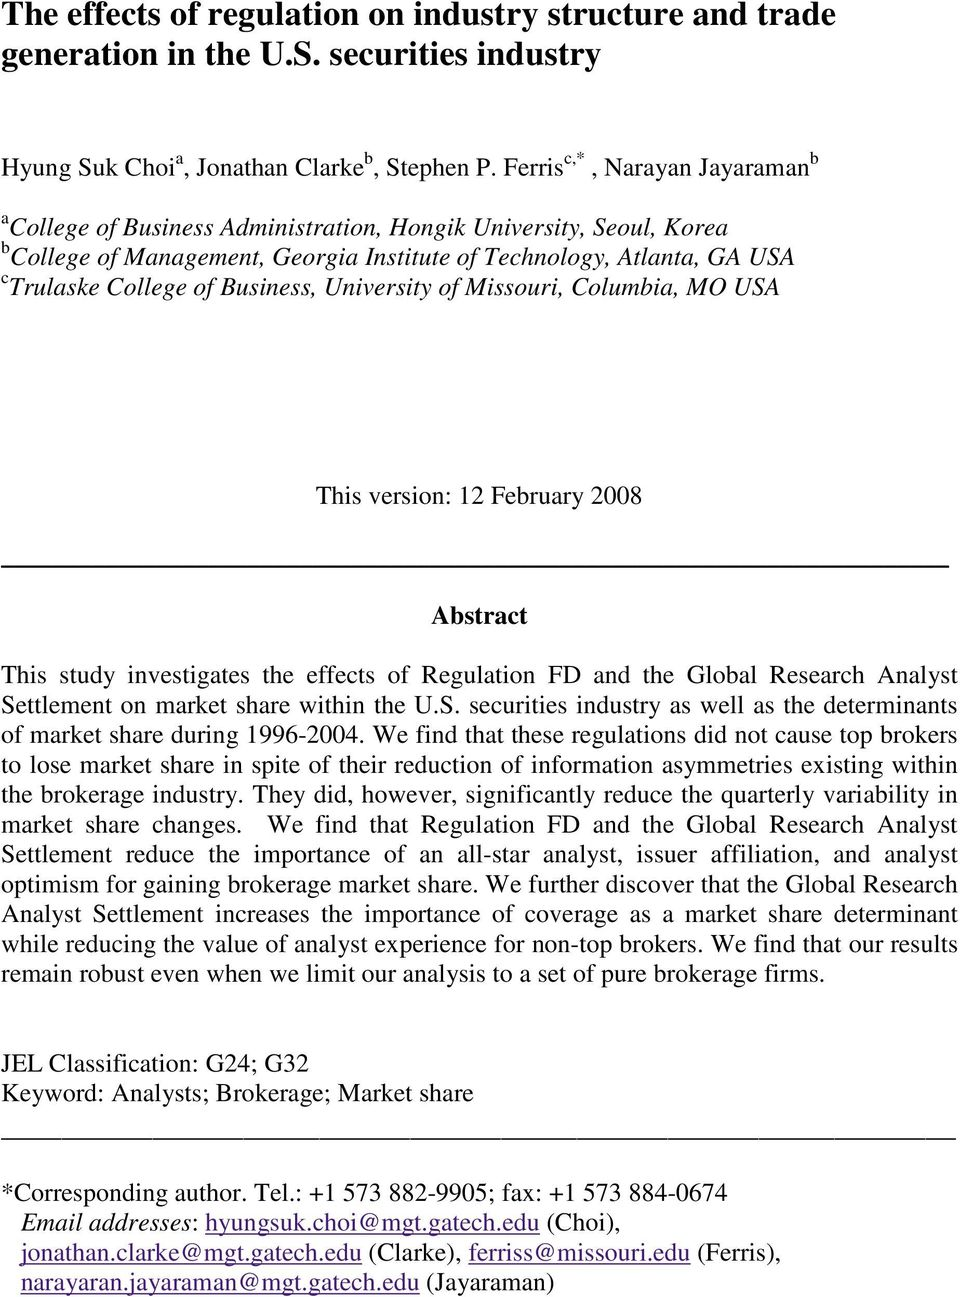 Business, University of Missouri, Columbia, MO USA This version: 12 February 2008 Abstract This study investigates the effects of Regulation FD and the Global Research Analyst Settlement on market